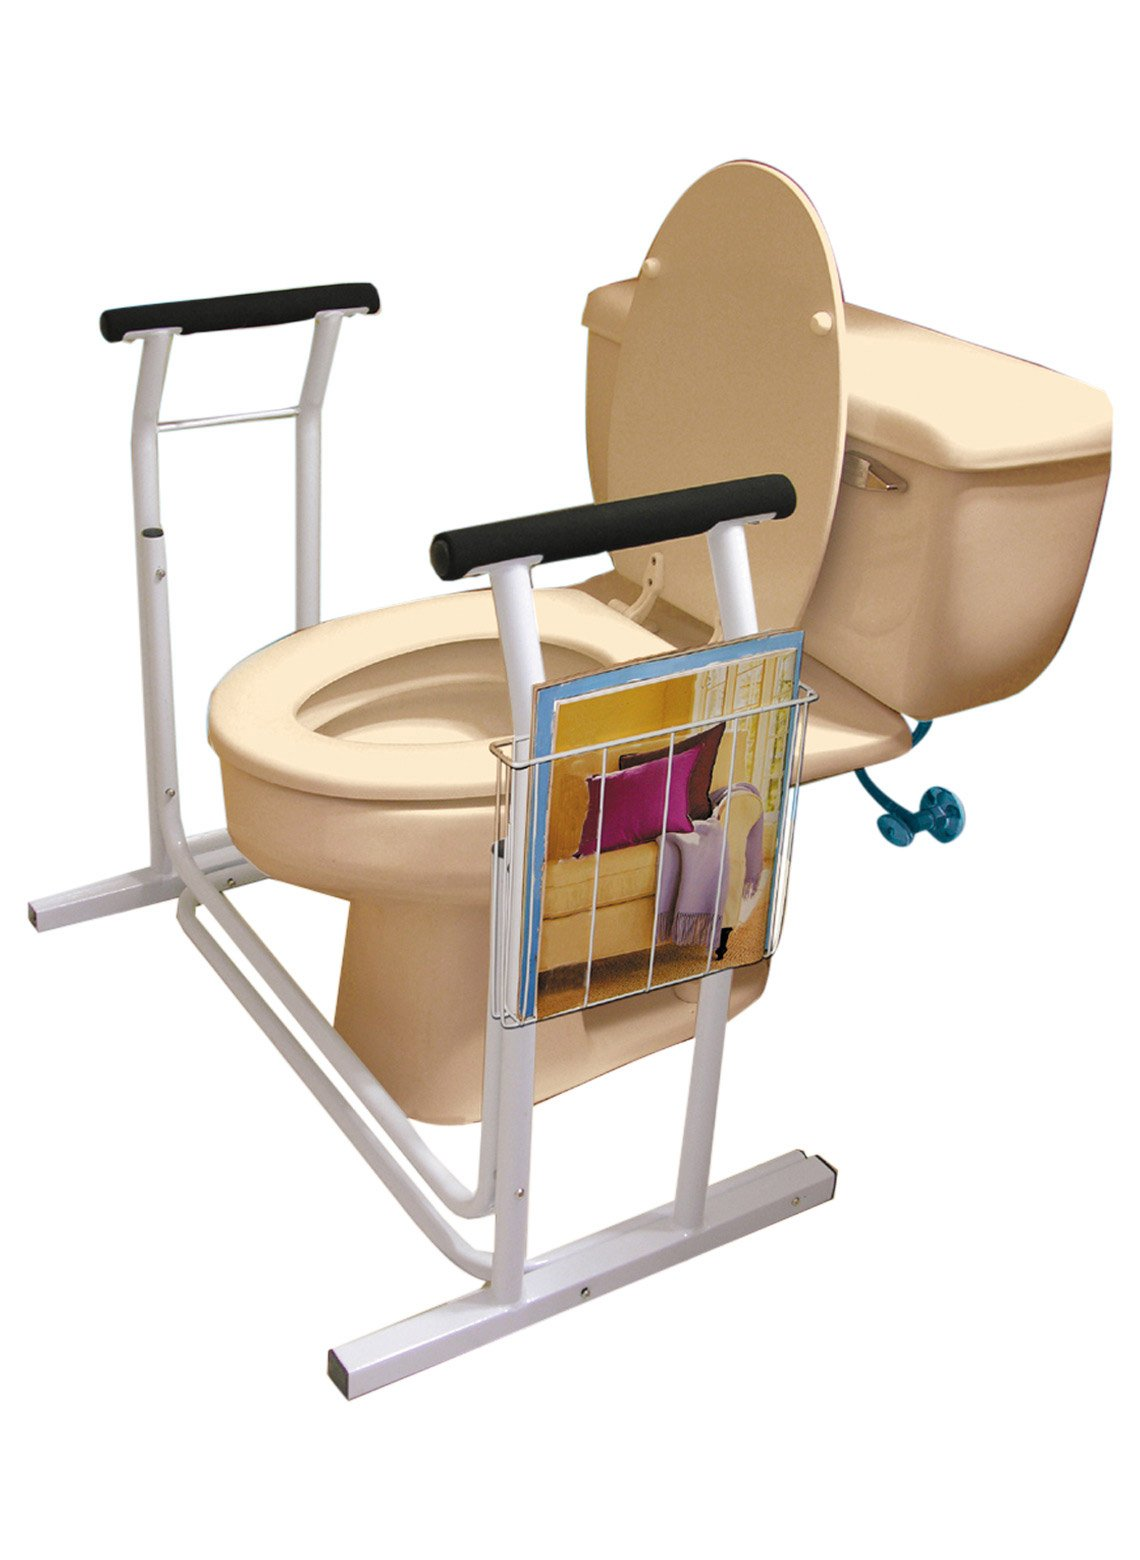 Ideaworks JB4349 Deluxe Toilet Safety Support